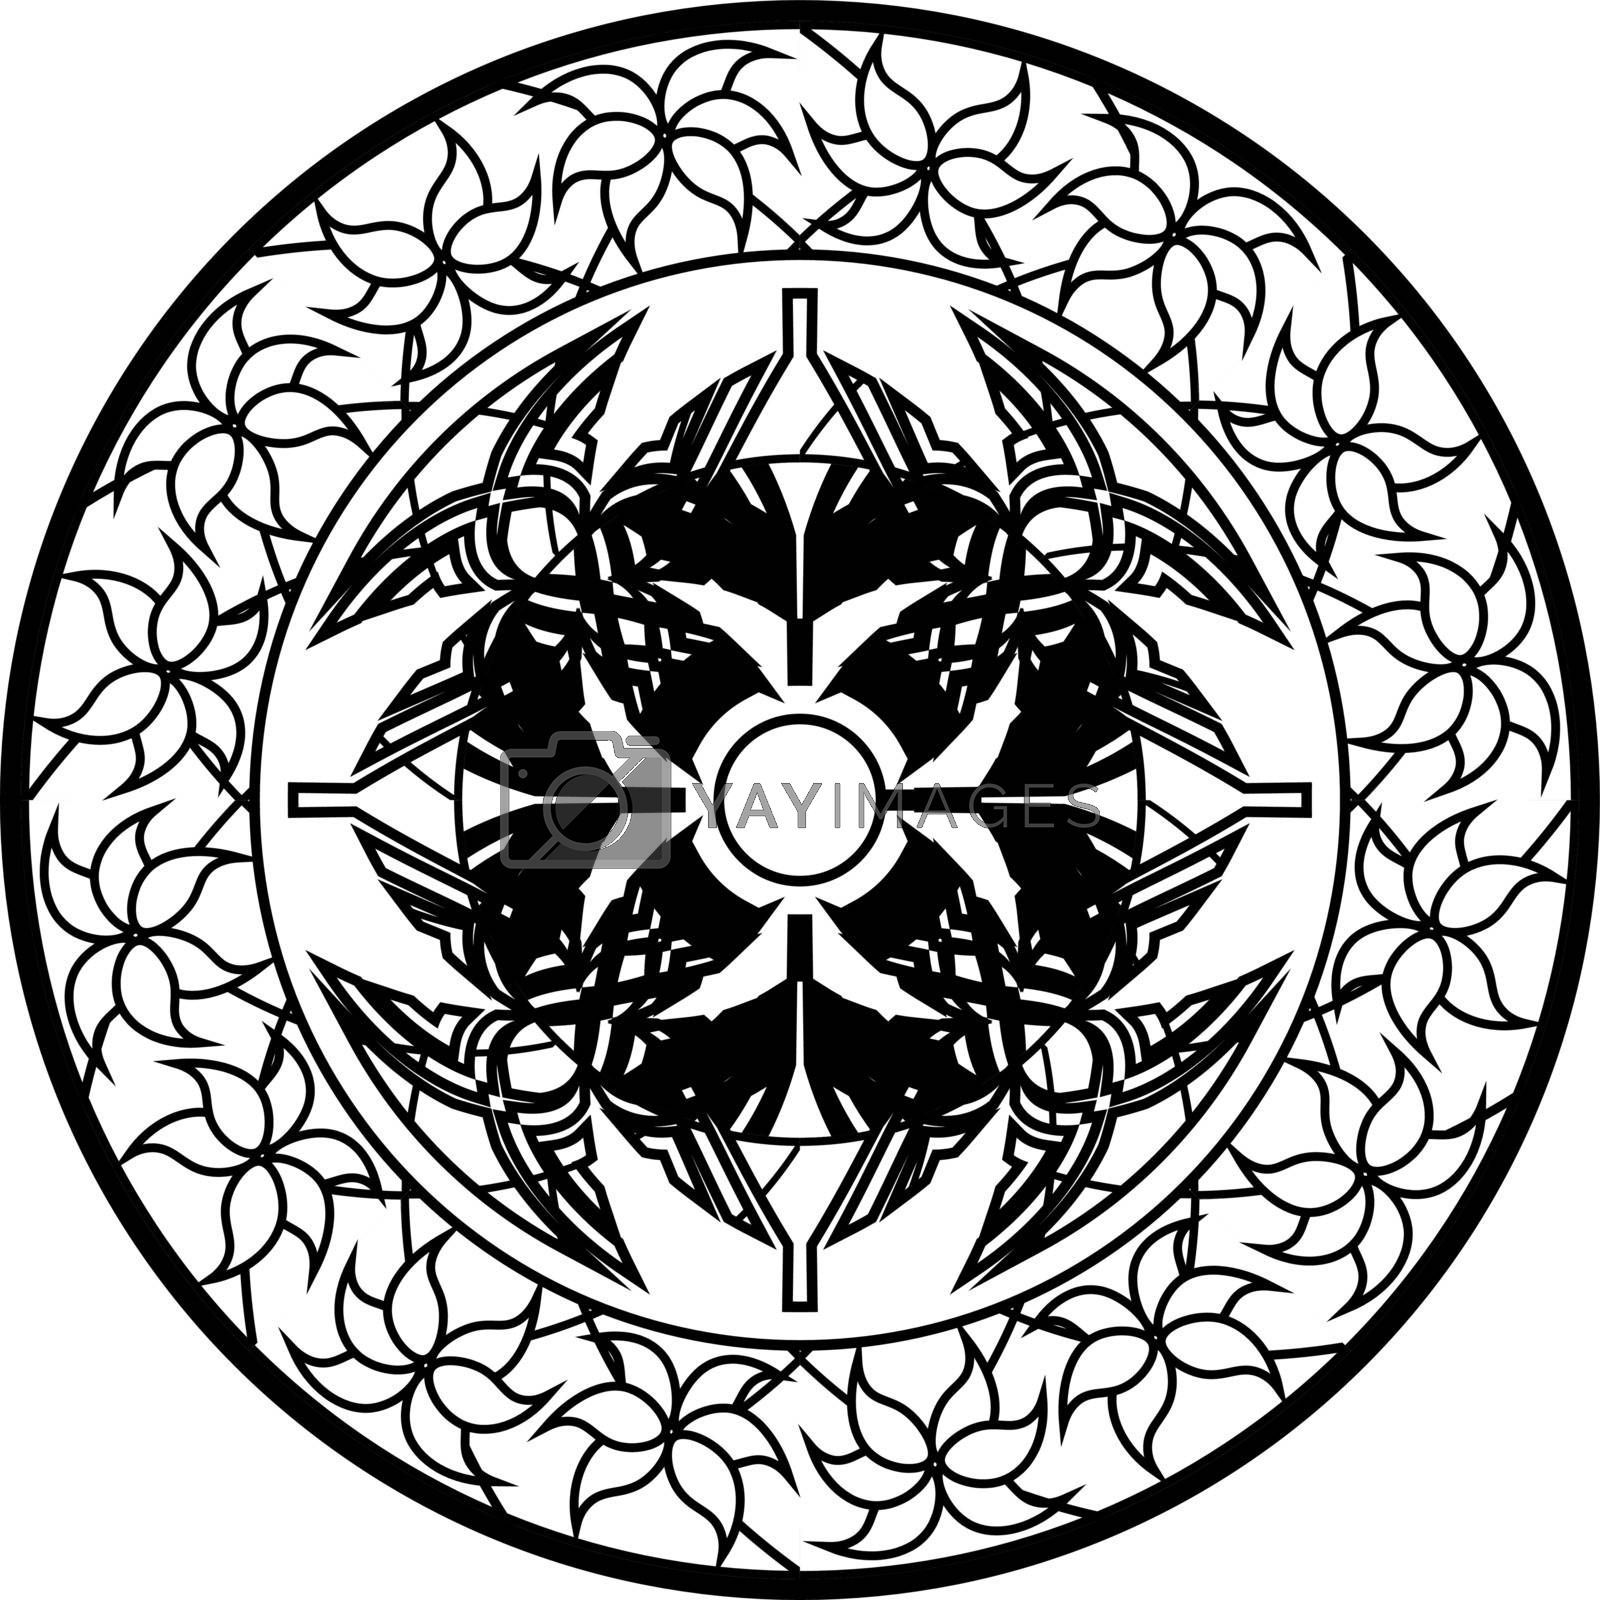 abstract monochrome mandala with folk geometric tracery ornamented by flowers